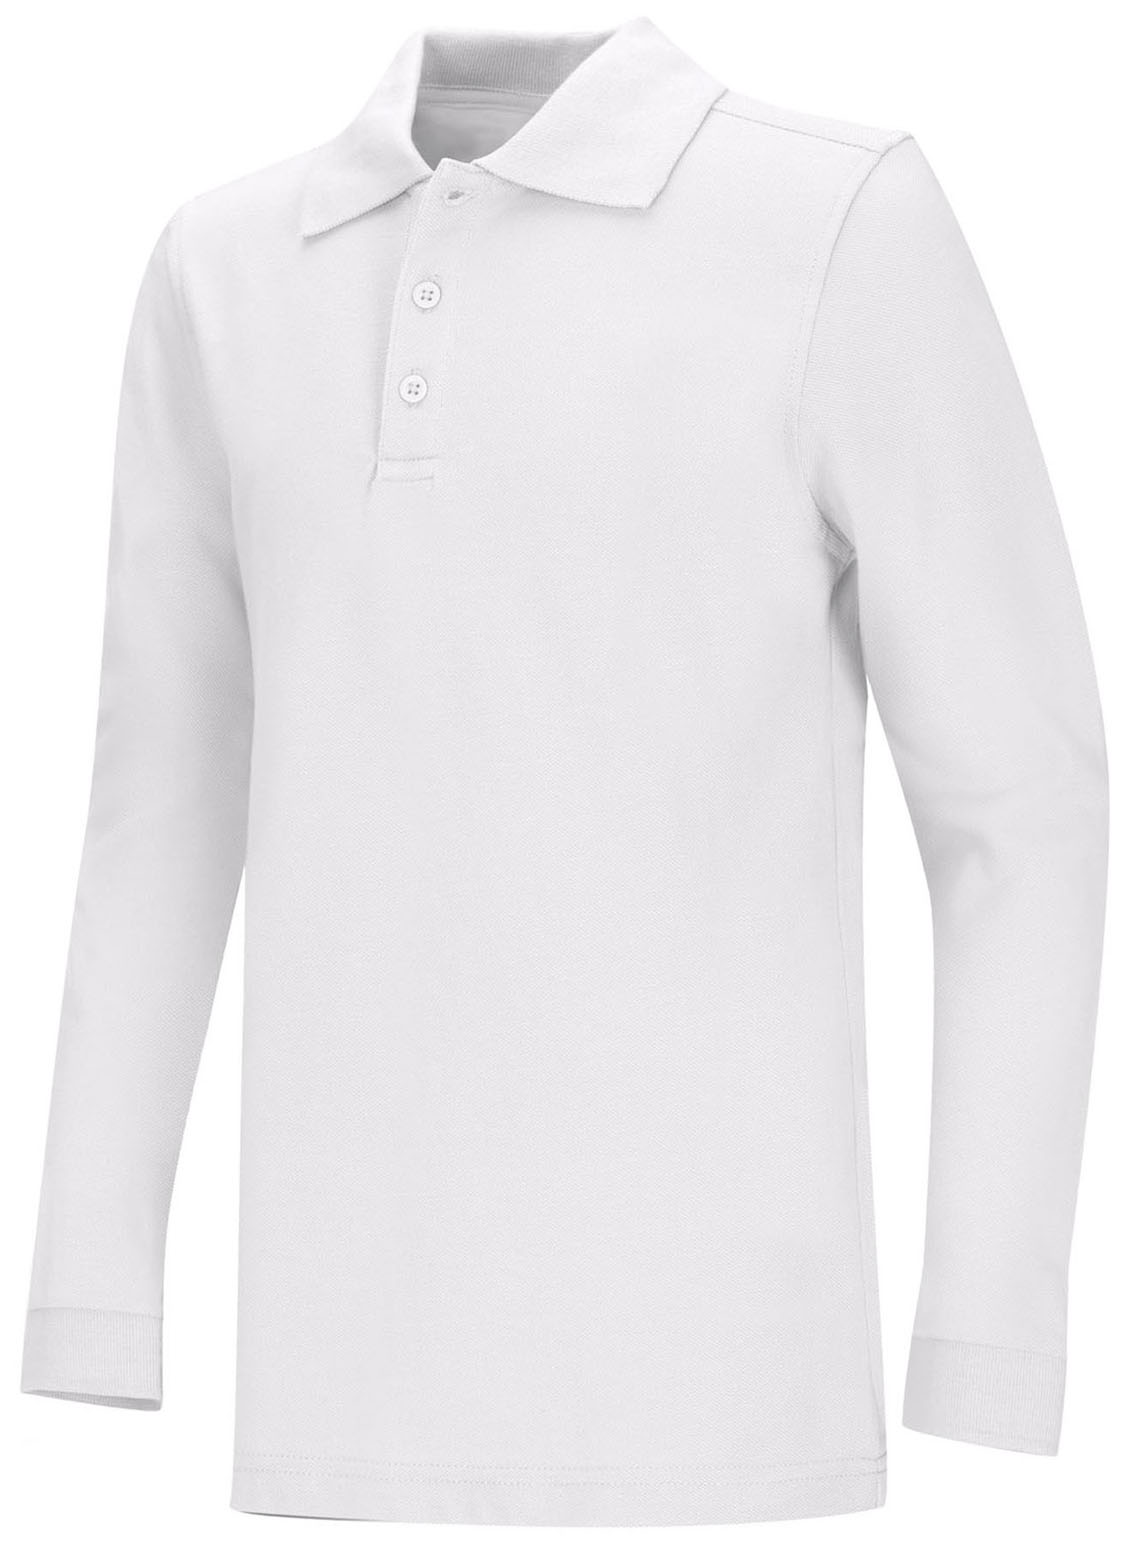 3ff53ff3be6 Classroom Adult Unisex Long Sleeve Pique Polo in White 58354-WHT ...